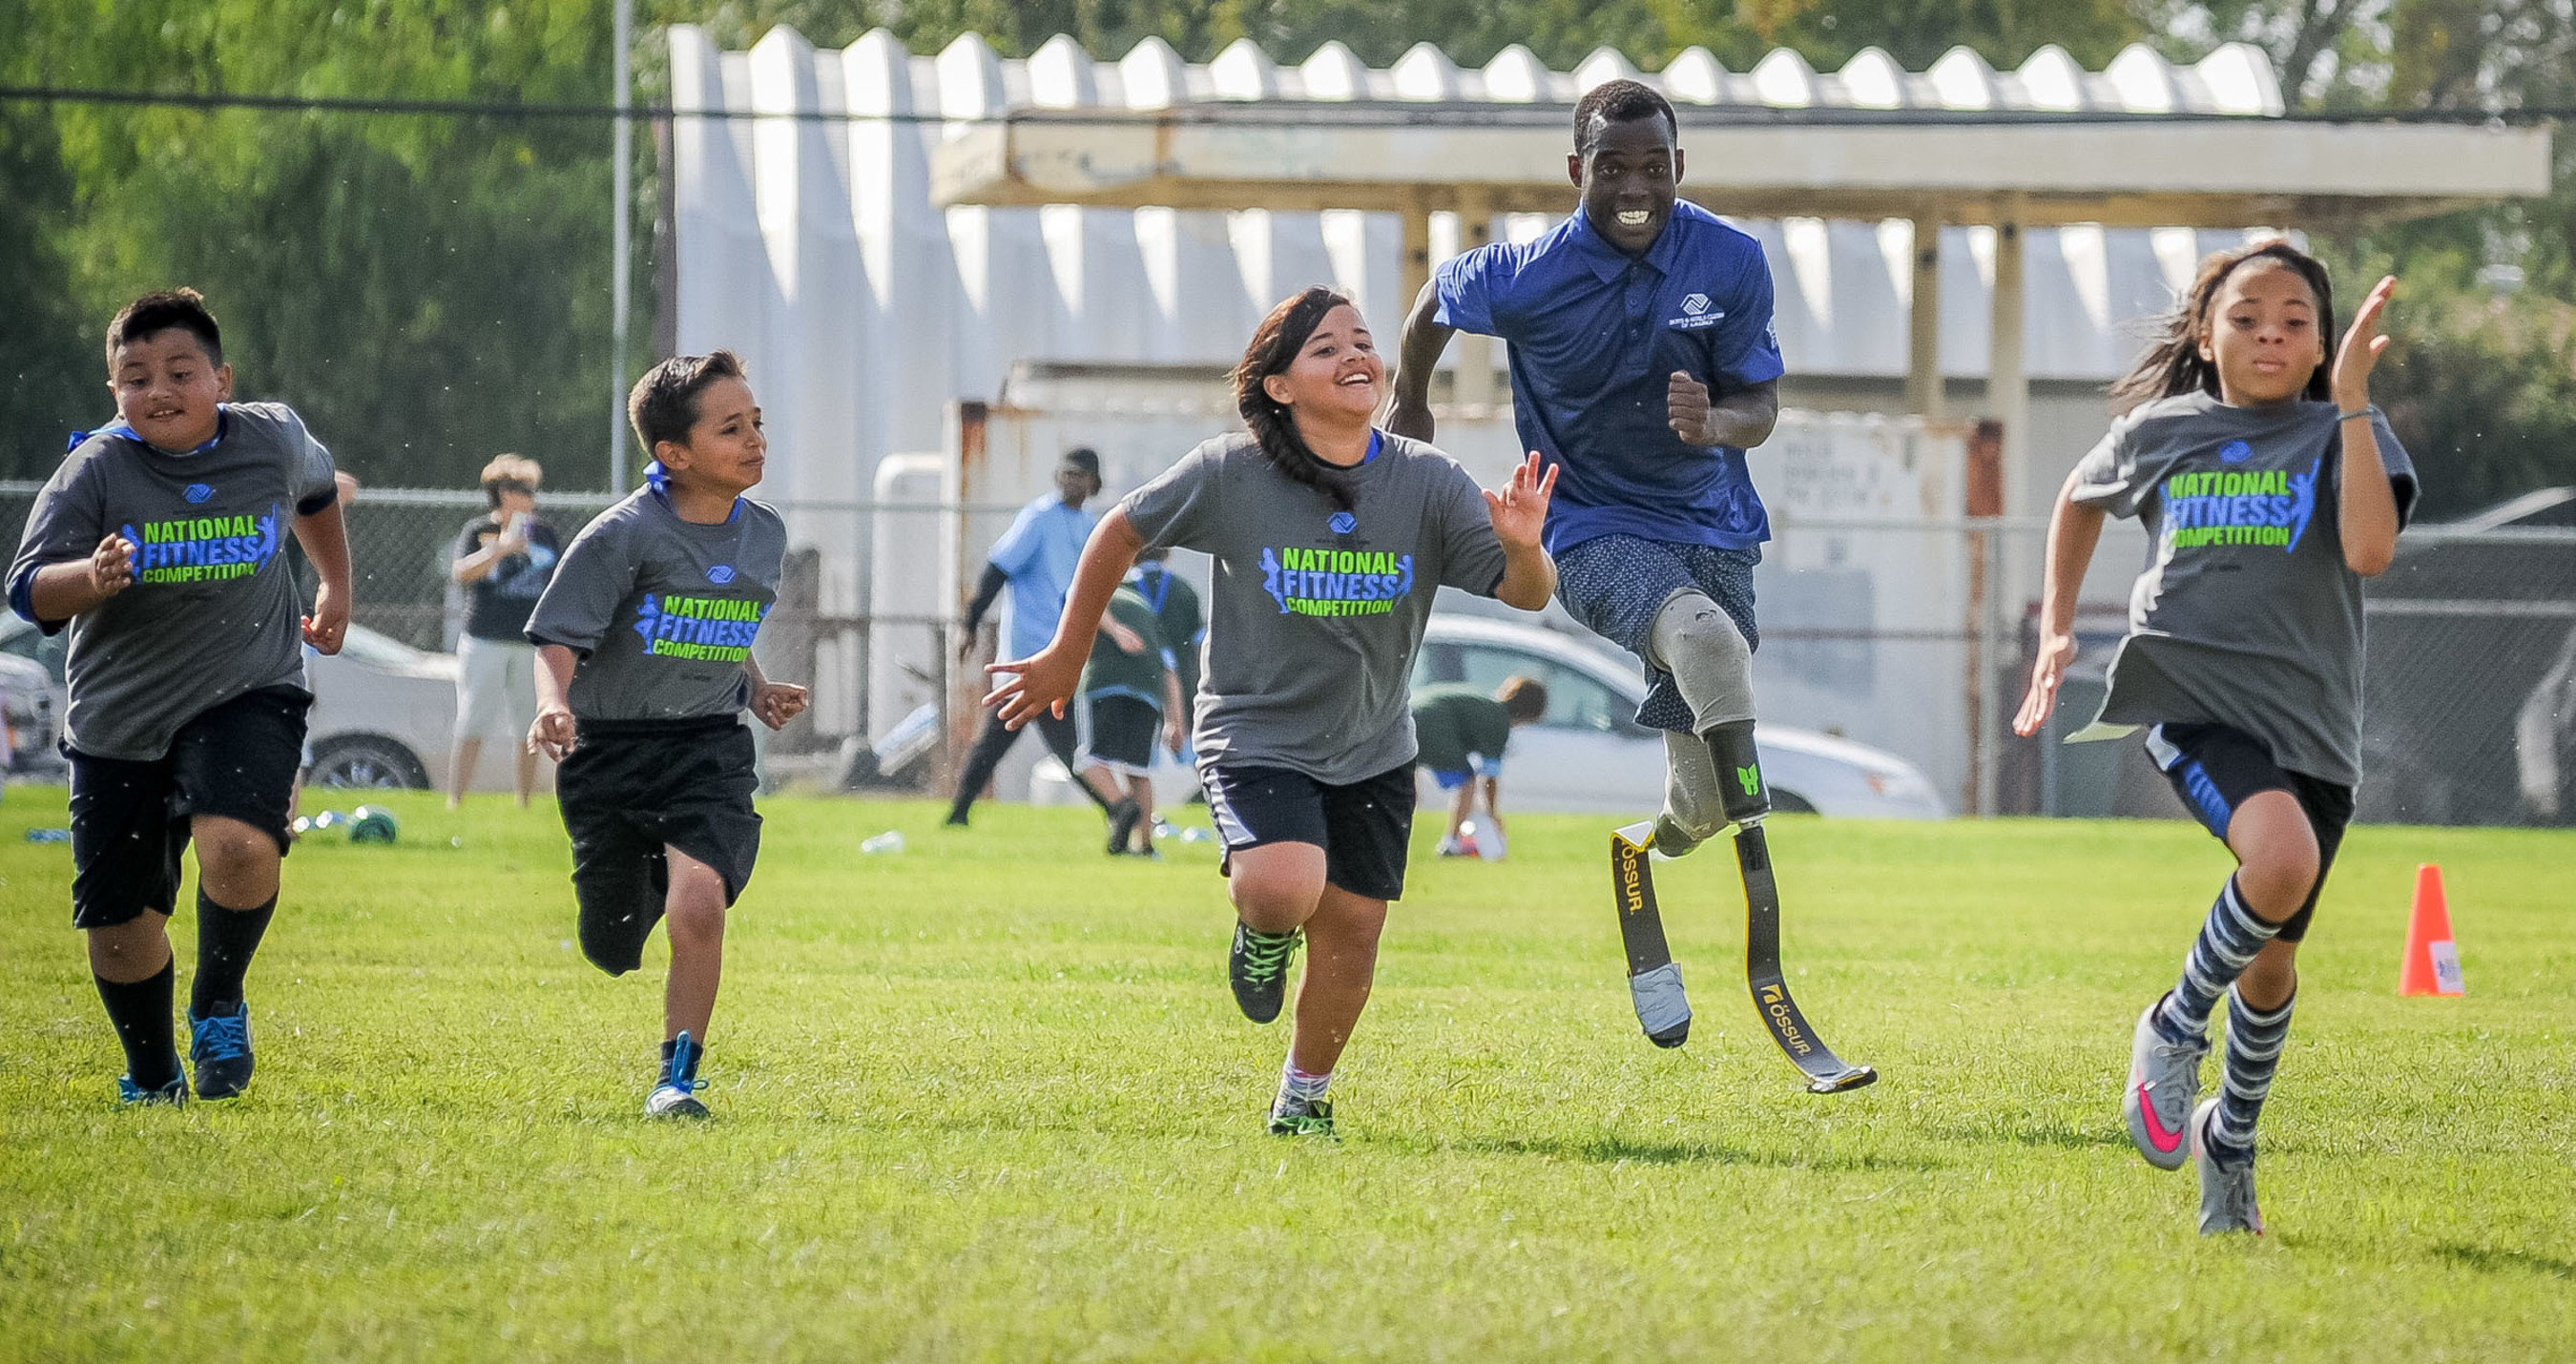 Paralympic athlete Blake Leeper races with Boys & Girls Club kids in Bakersfield, California during Boys & Girls Clubs of America and Nestle's National Fitness Competition.